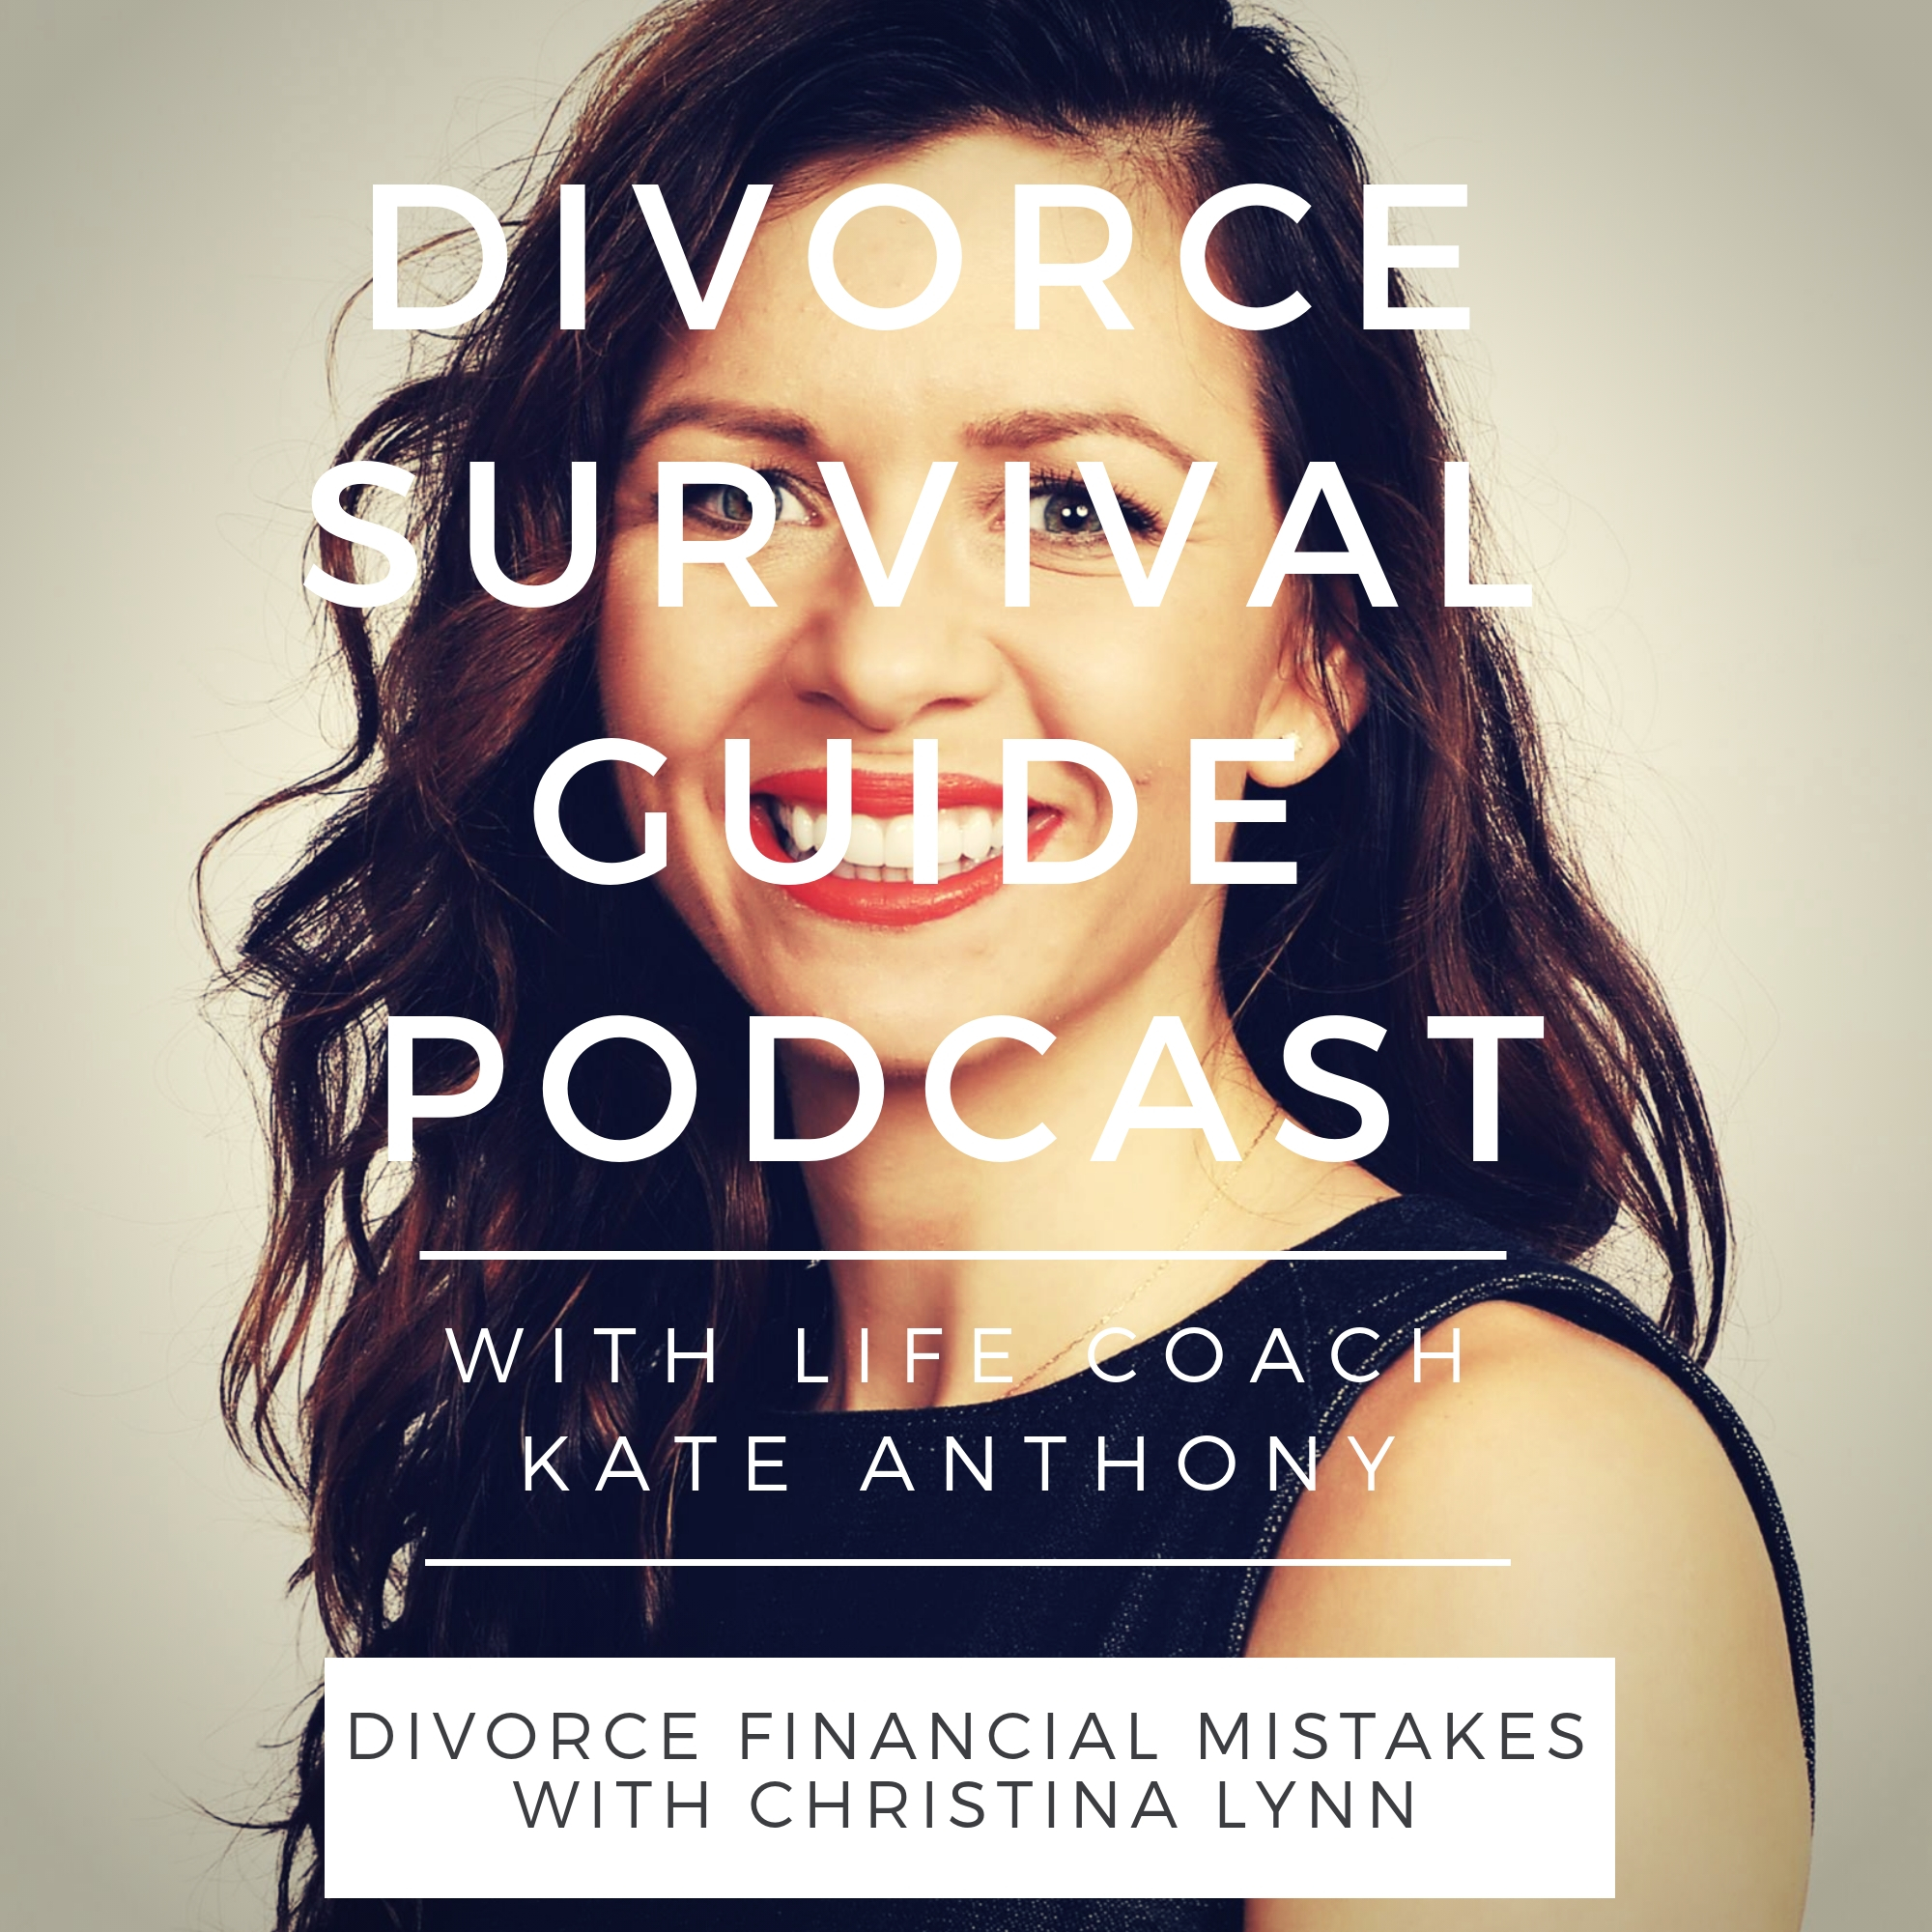 The Divorce Survival Guide Podcast - Divorce Financial Mistakes with Christina Lynn